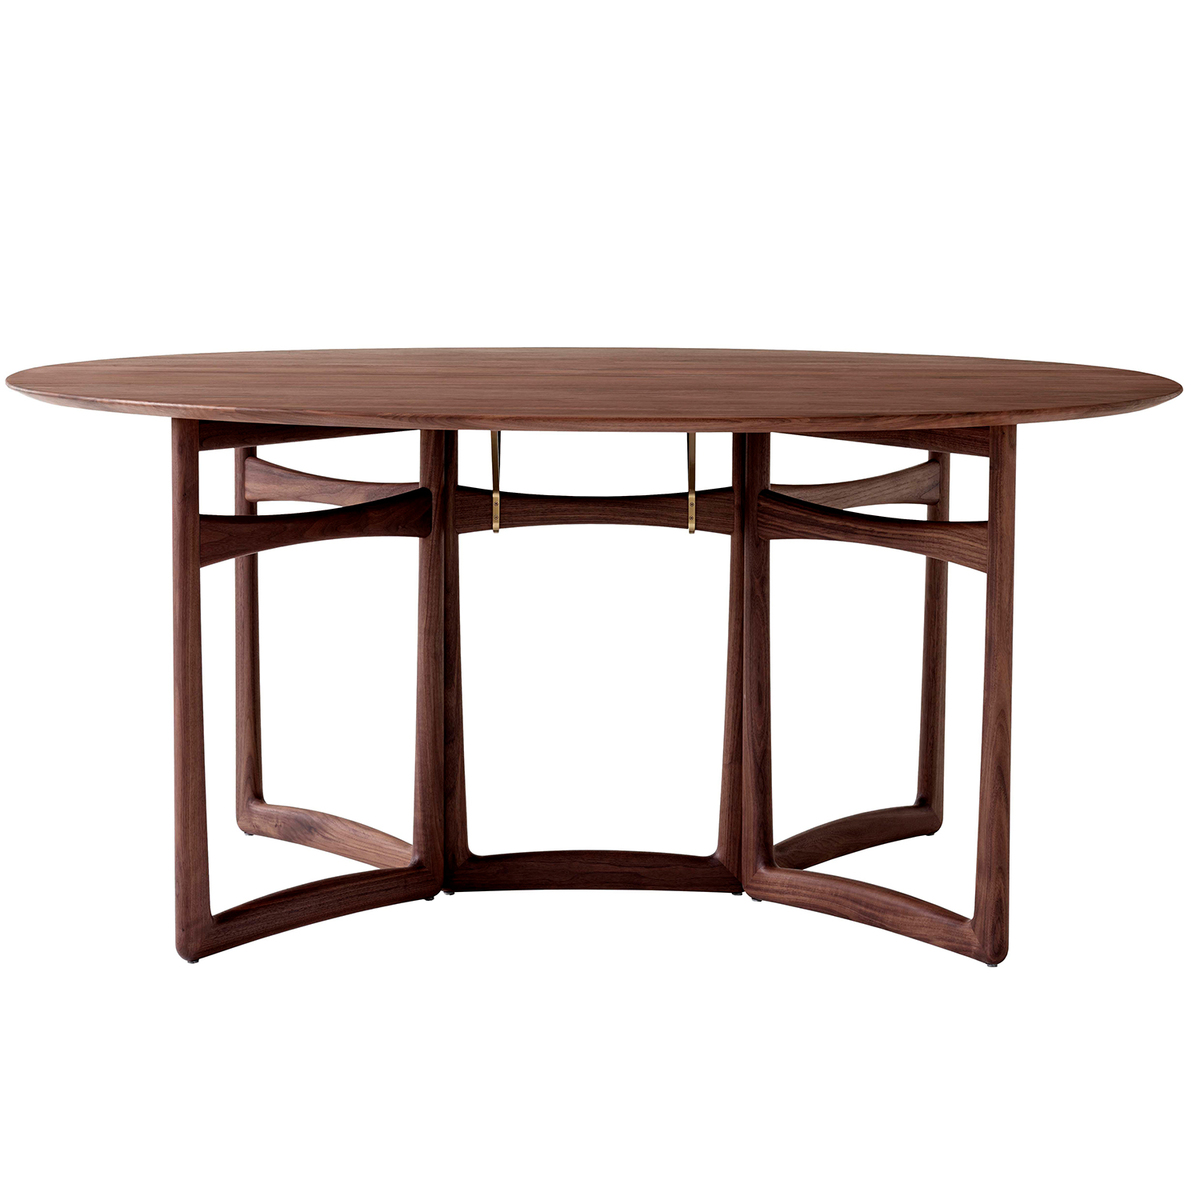 Image of: Tradition Drop Leaf Hm6 Dining Table Oiled Walnut Finnish Design Shop